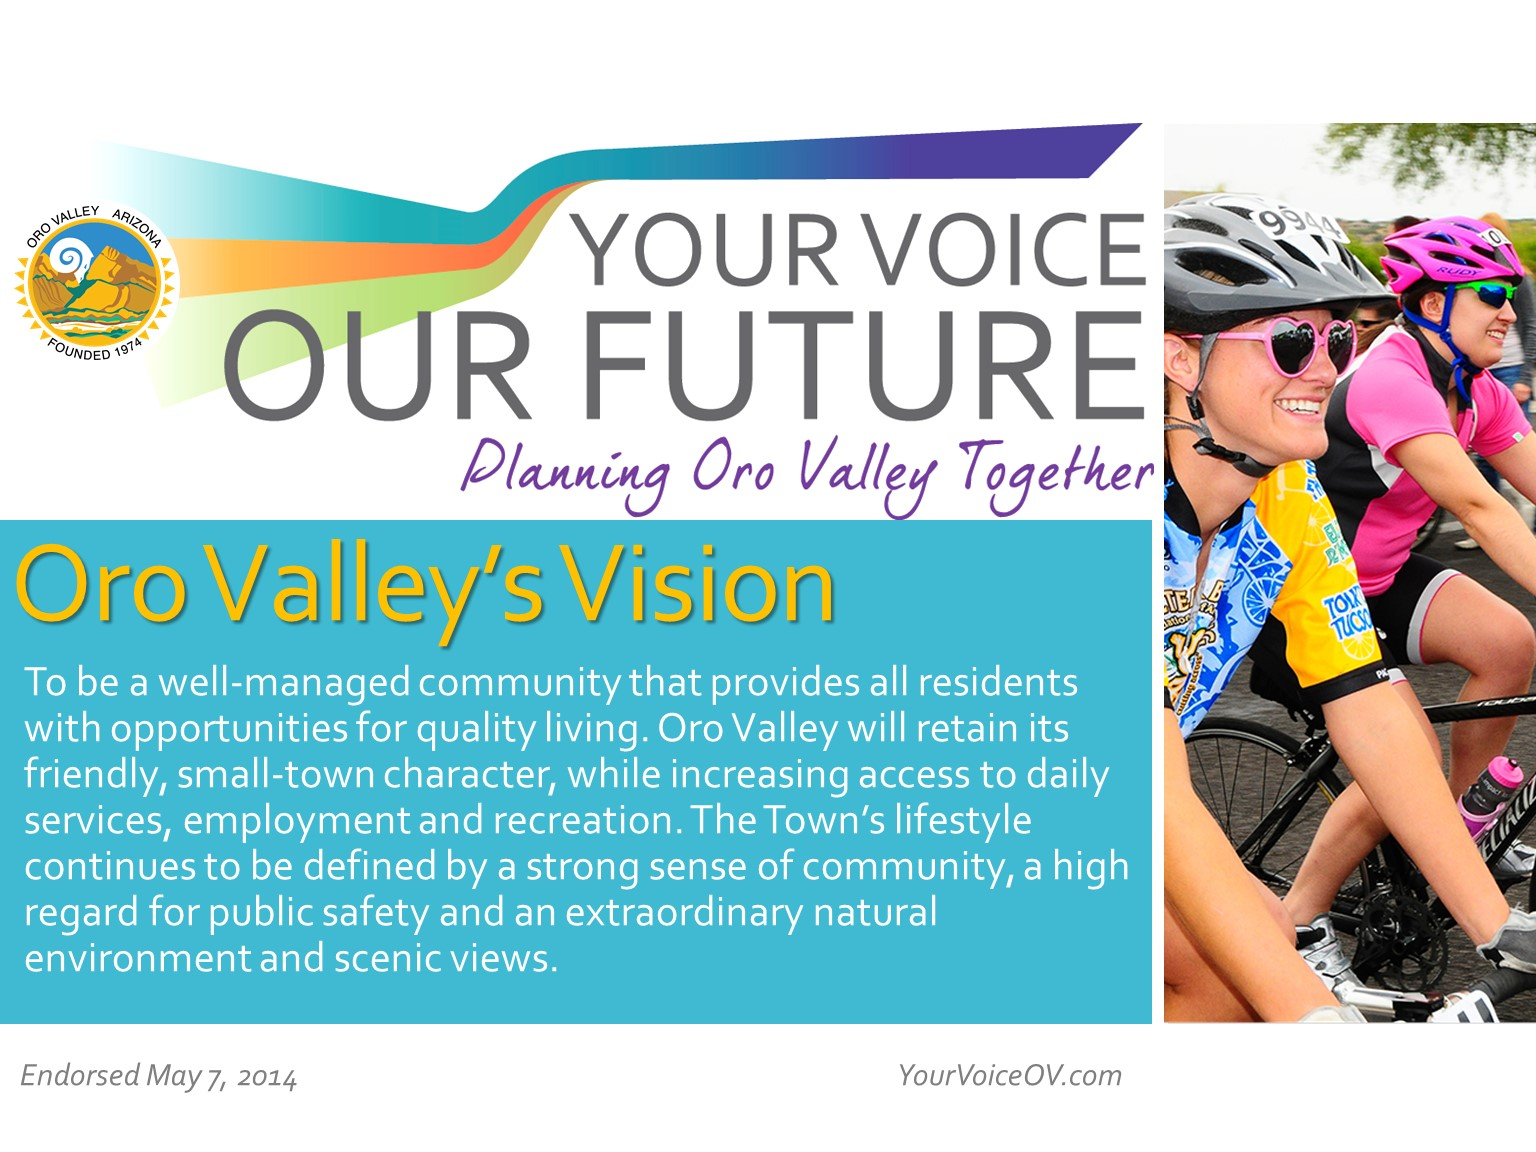 Make the Vision a Reality!